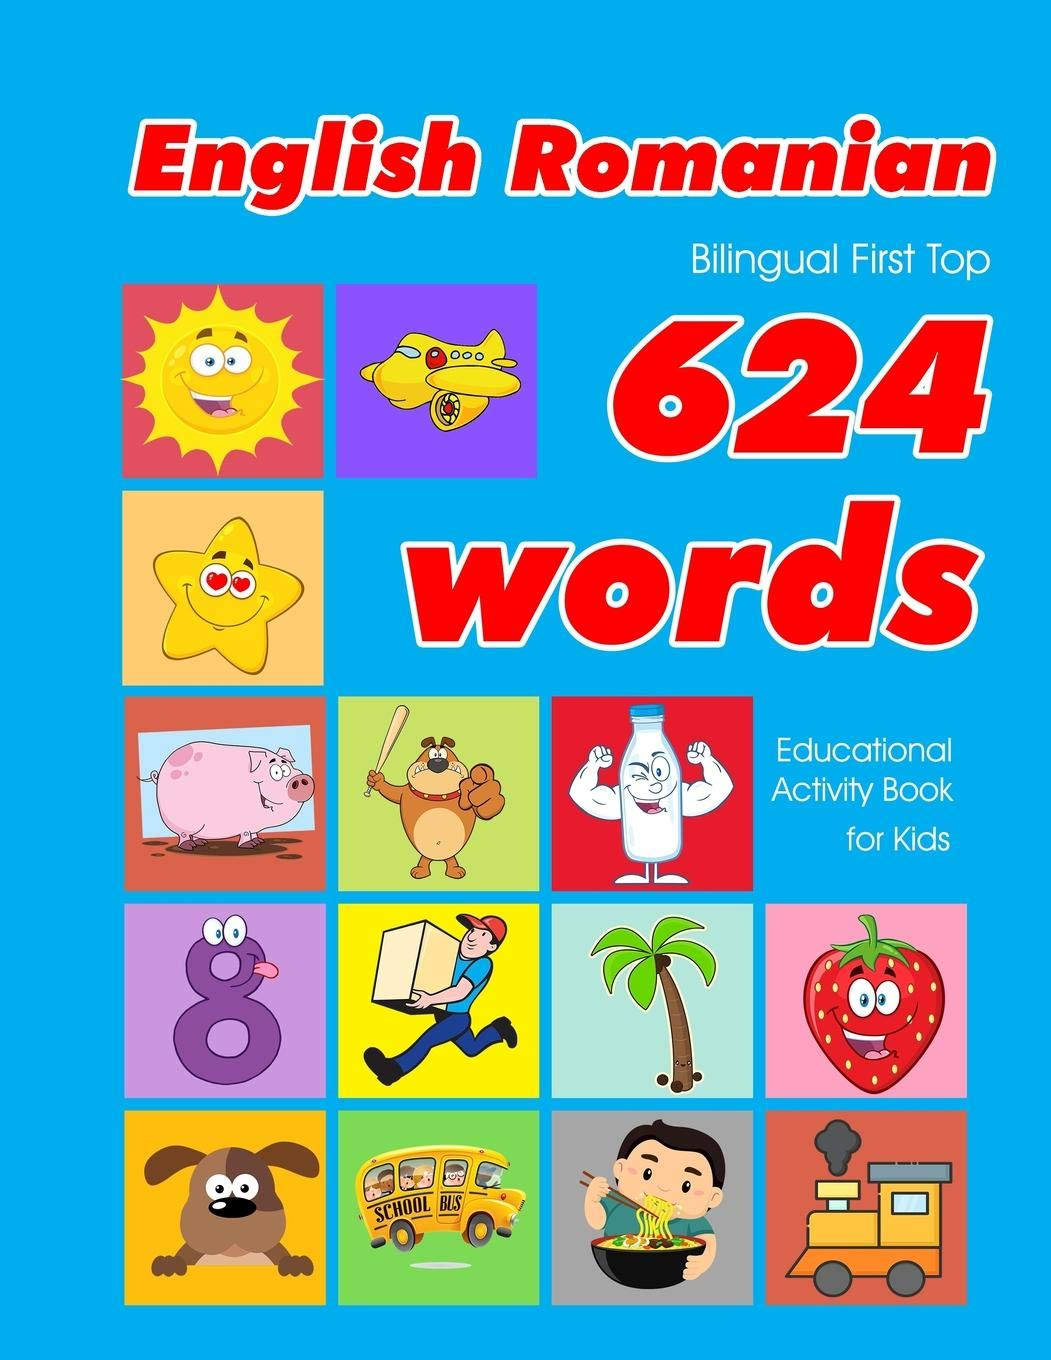 English – Romanian Bilingual First Top 624 Words Educational Activity Book for Kids: Easy vocabulary learning flashcards best for infants babies … (624 Basic First Words for Children)